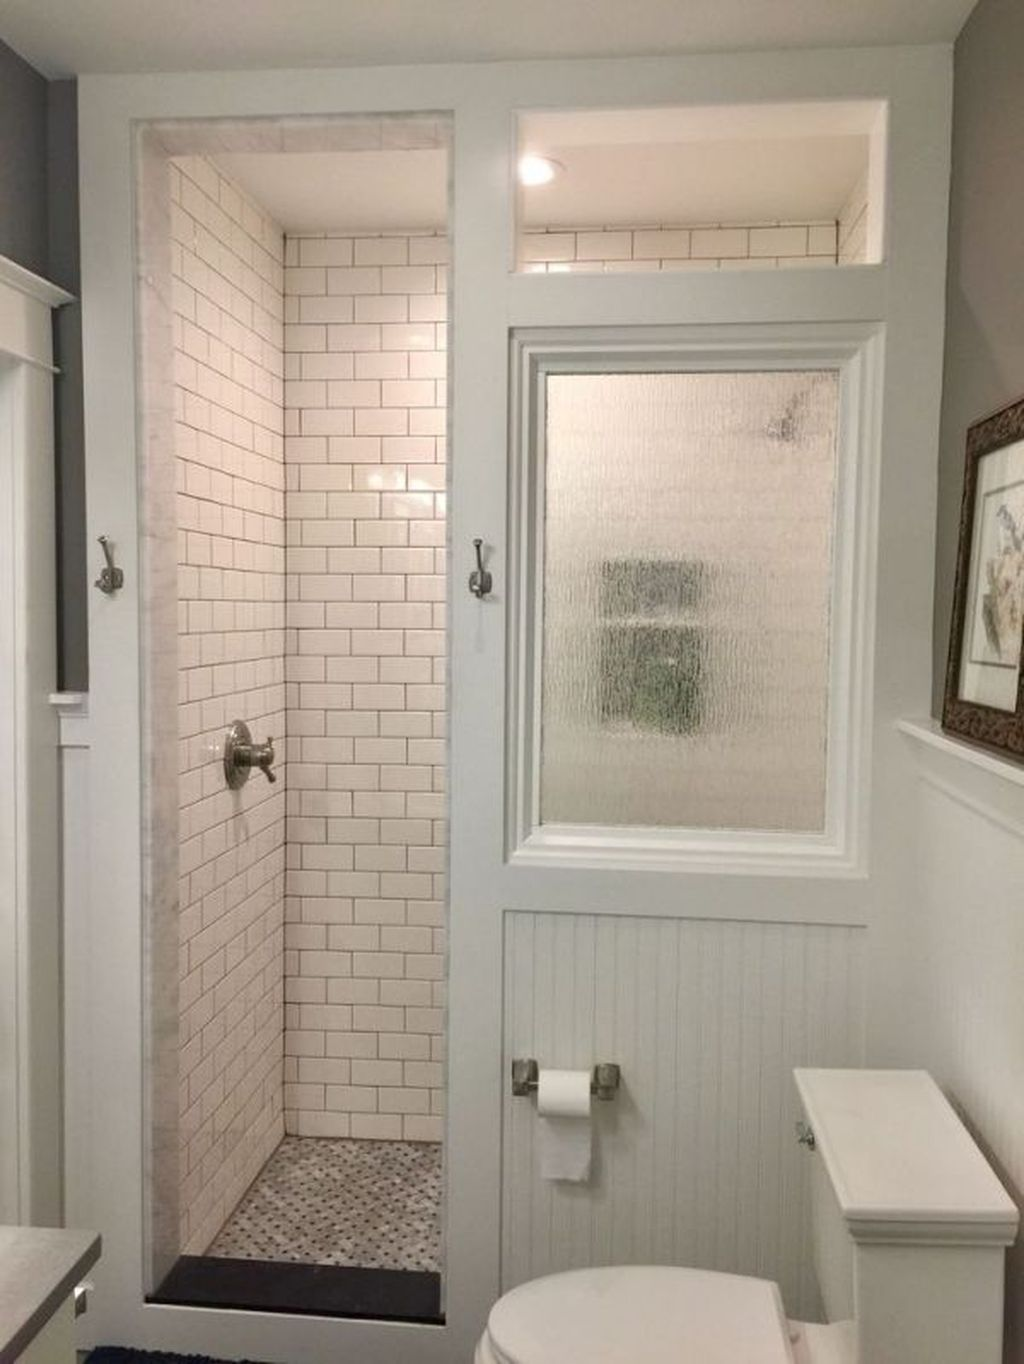 20 Gorgeous Small Bathroom Remodel Ideas On A Budget Coodecor Bathroom Remodel Shower Bathrooms Remodel Shower Remodel